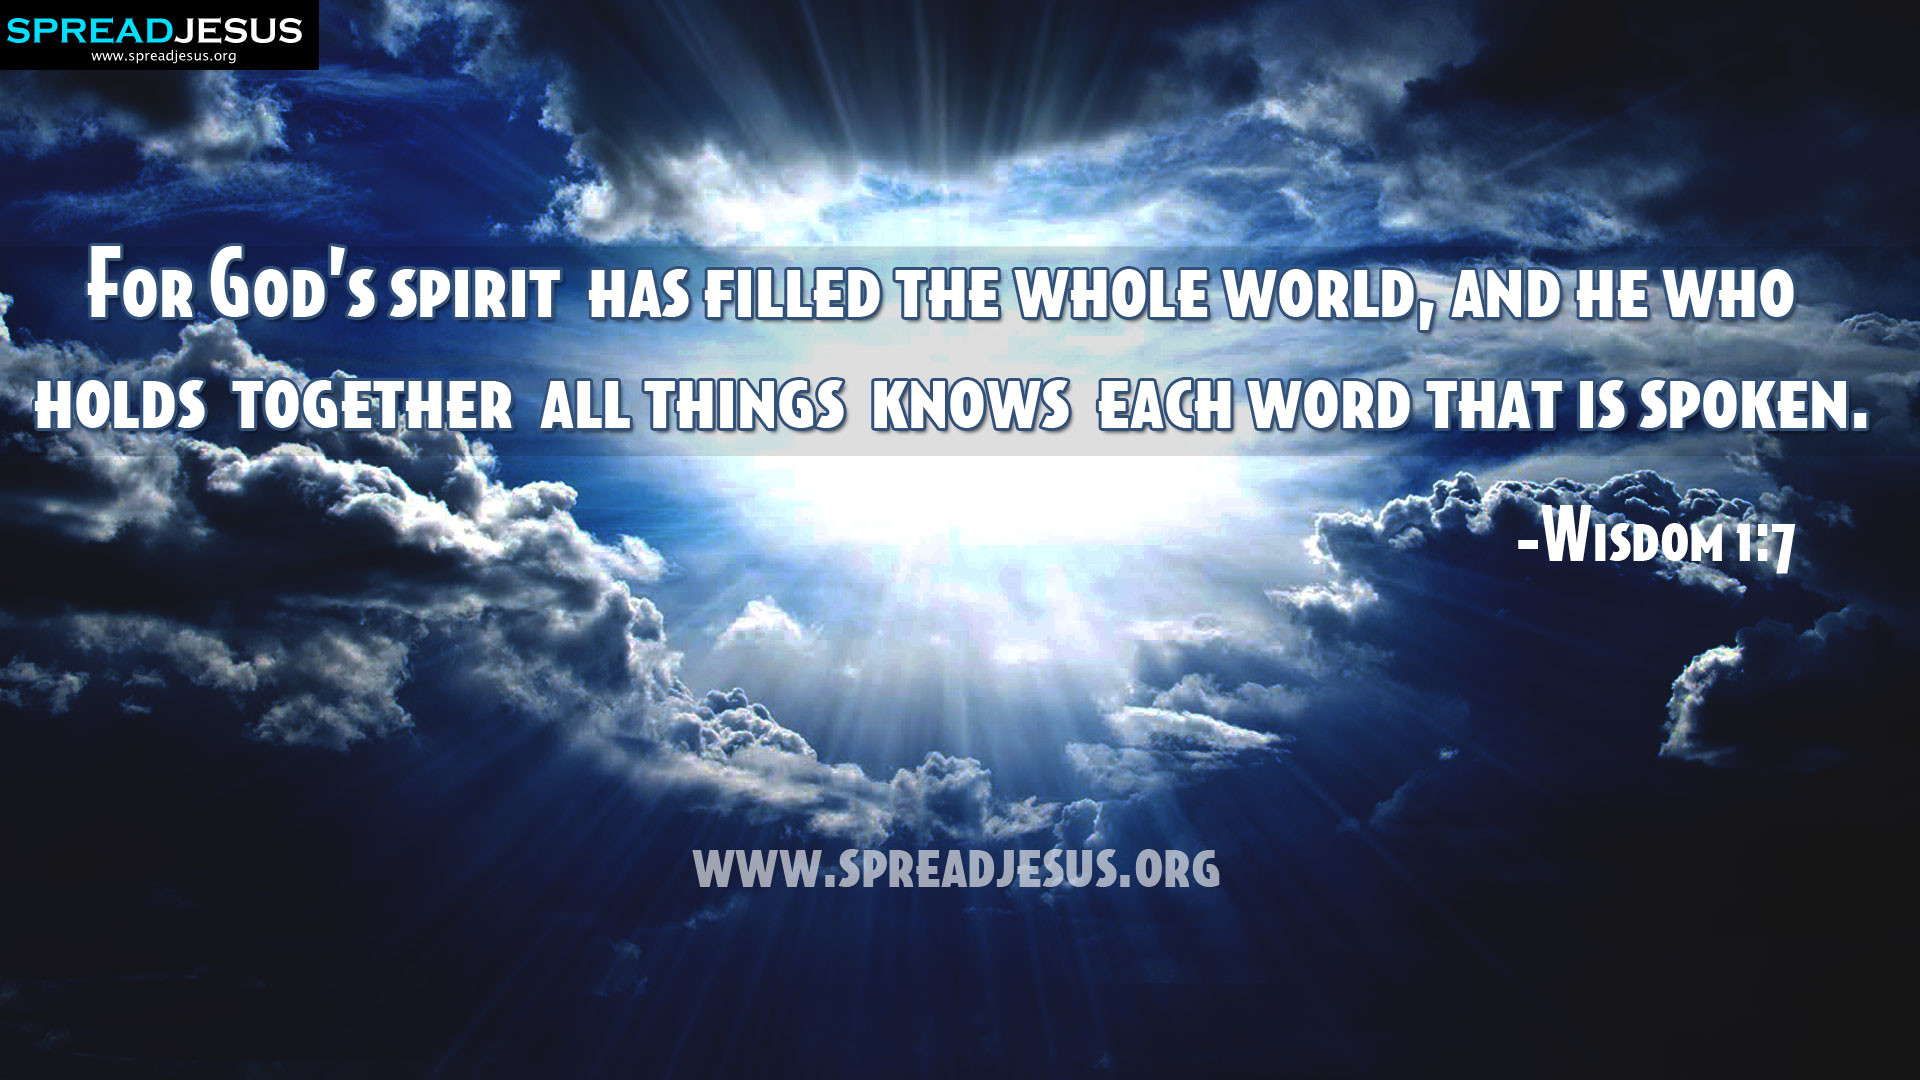 1920x1080, Christian Hd Wallpapers Holy Bible Quotes - Quotes About Wisdom Of Holy Spirit - HD Wallpaper